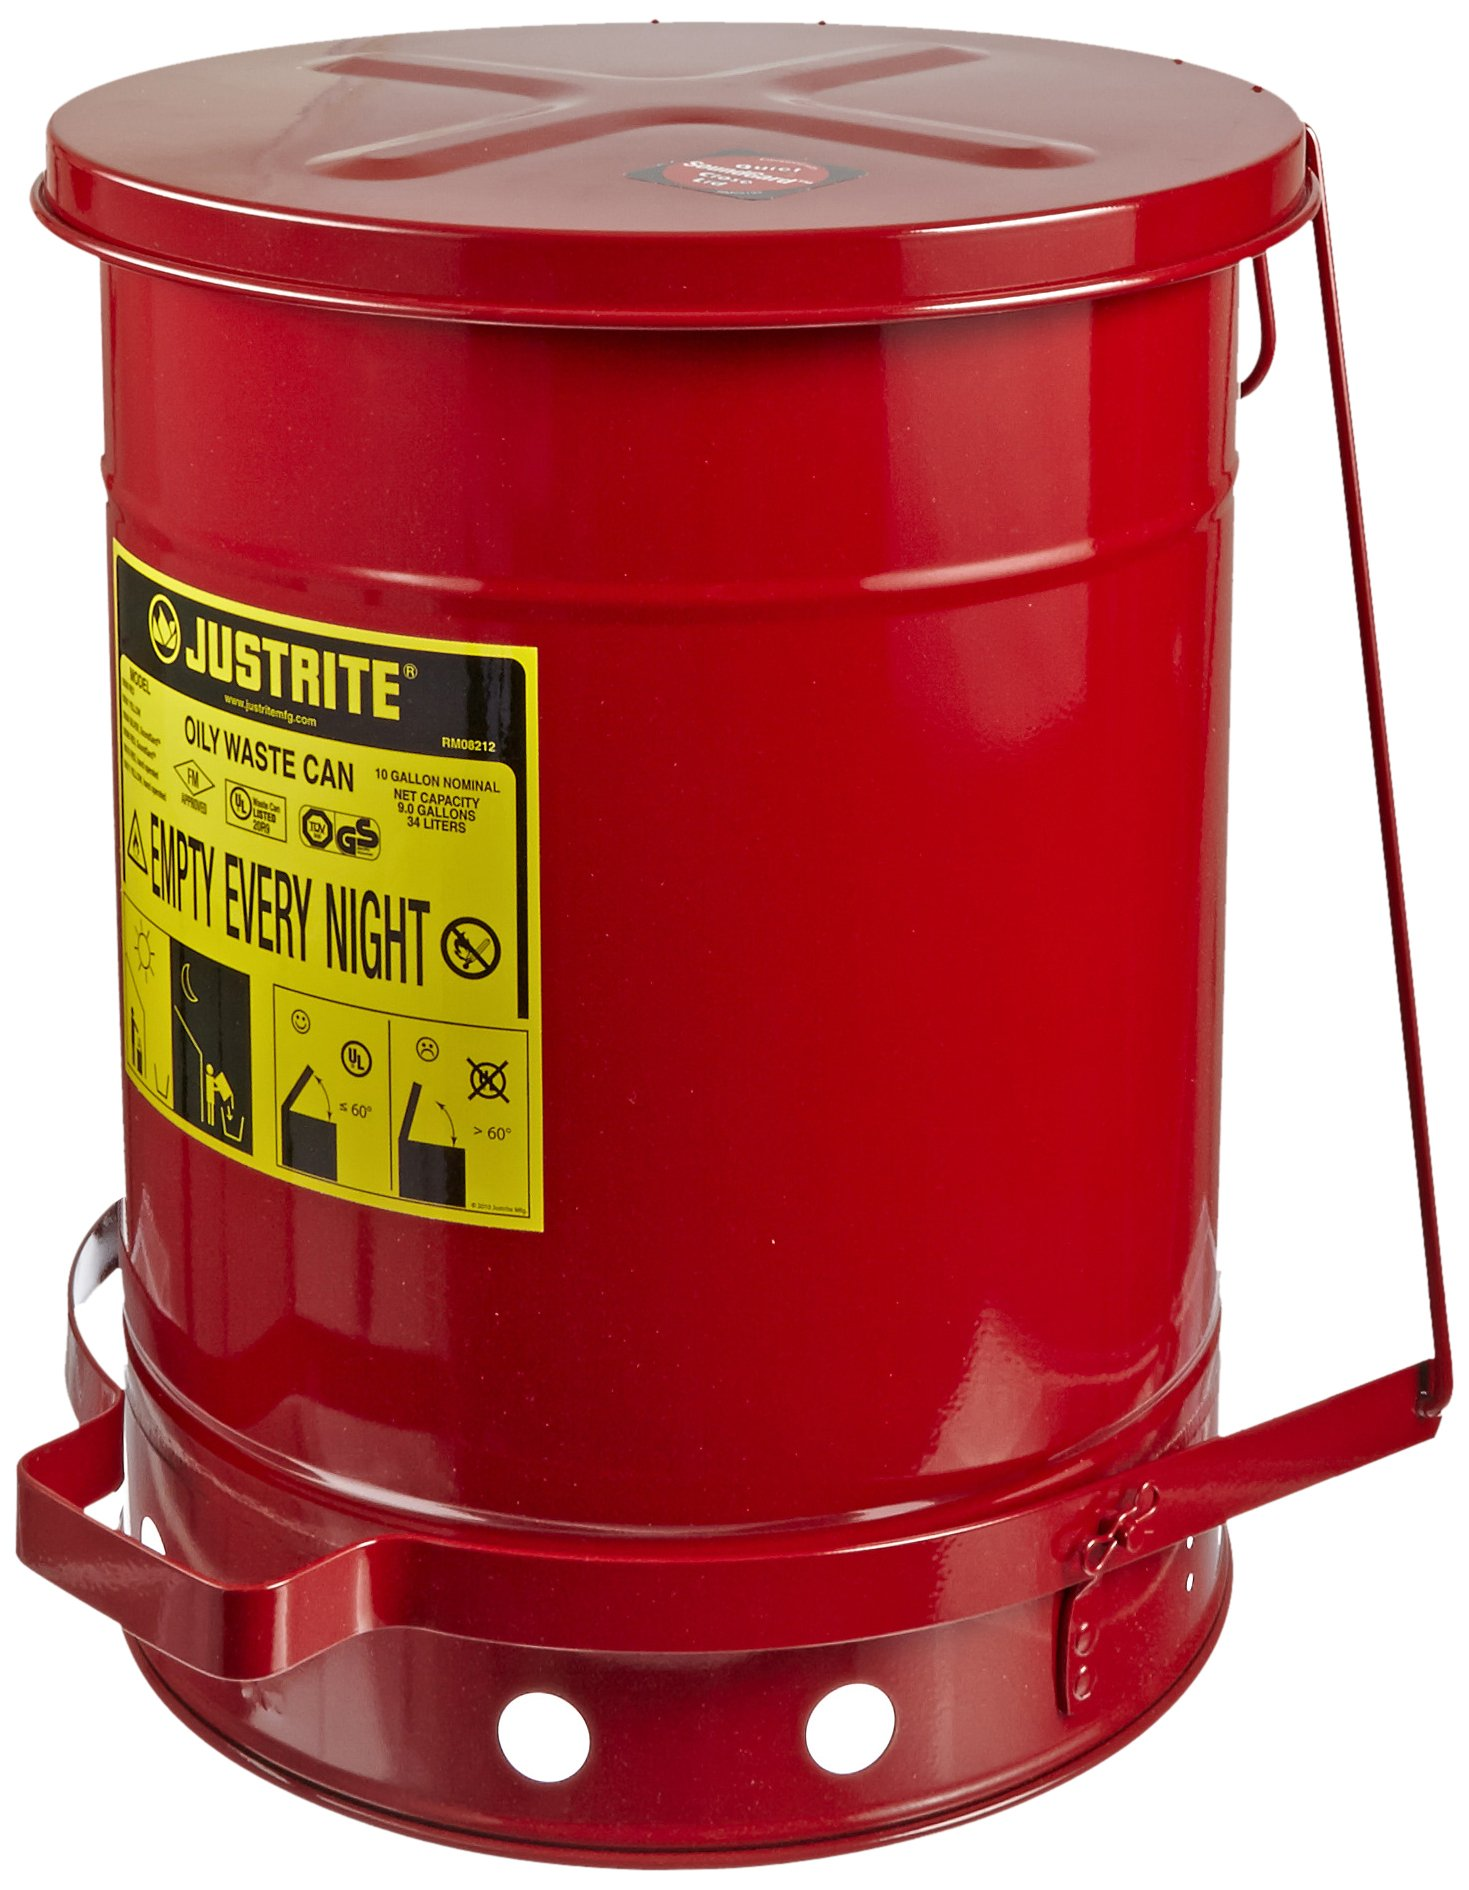 Justrite 09308 SoundGuard Galvanized Steel Oily Waste Safety Can with Foot Operated Cover, 10 Gallon Capacity, Red